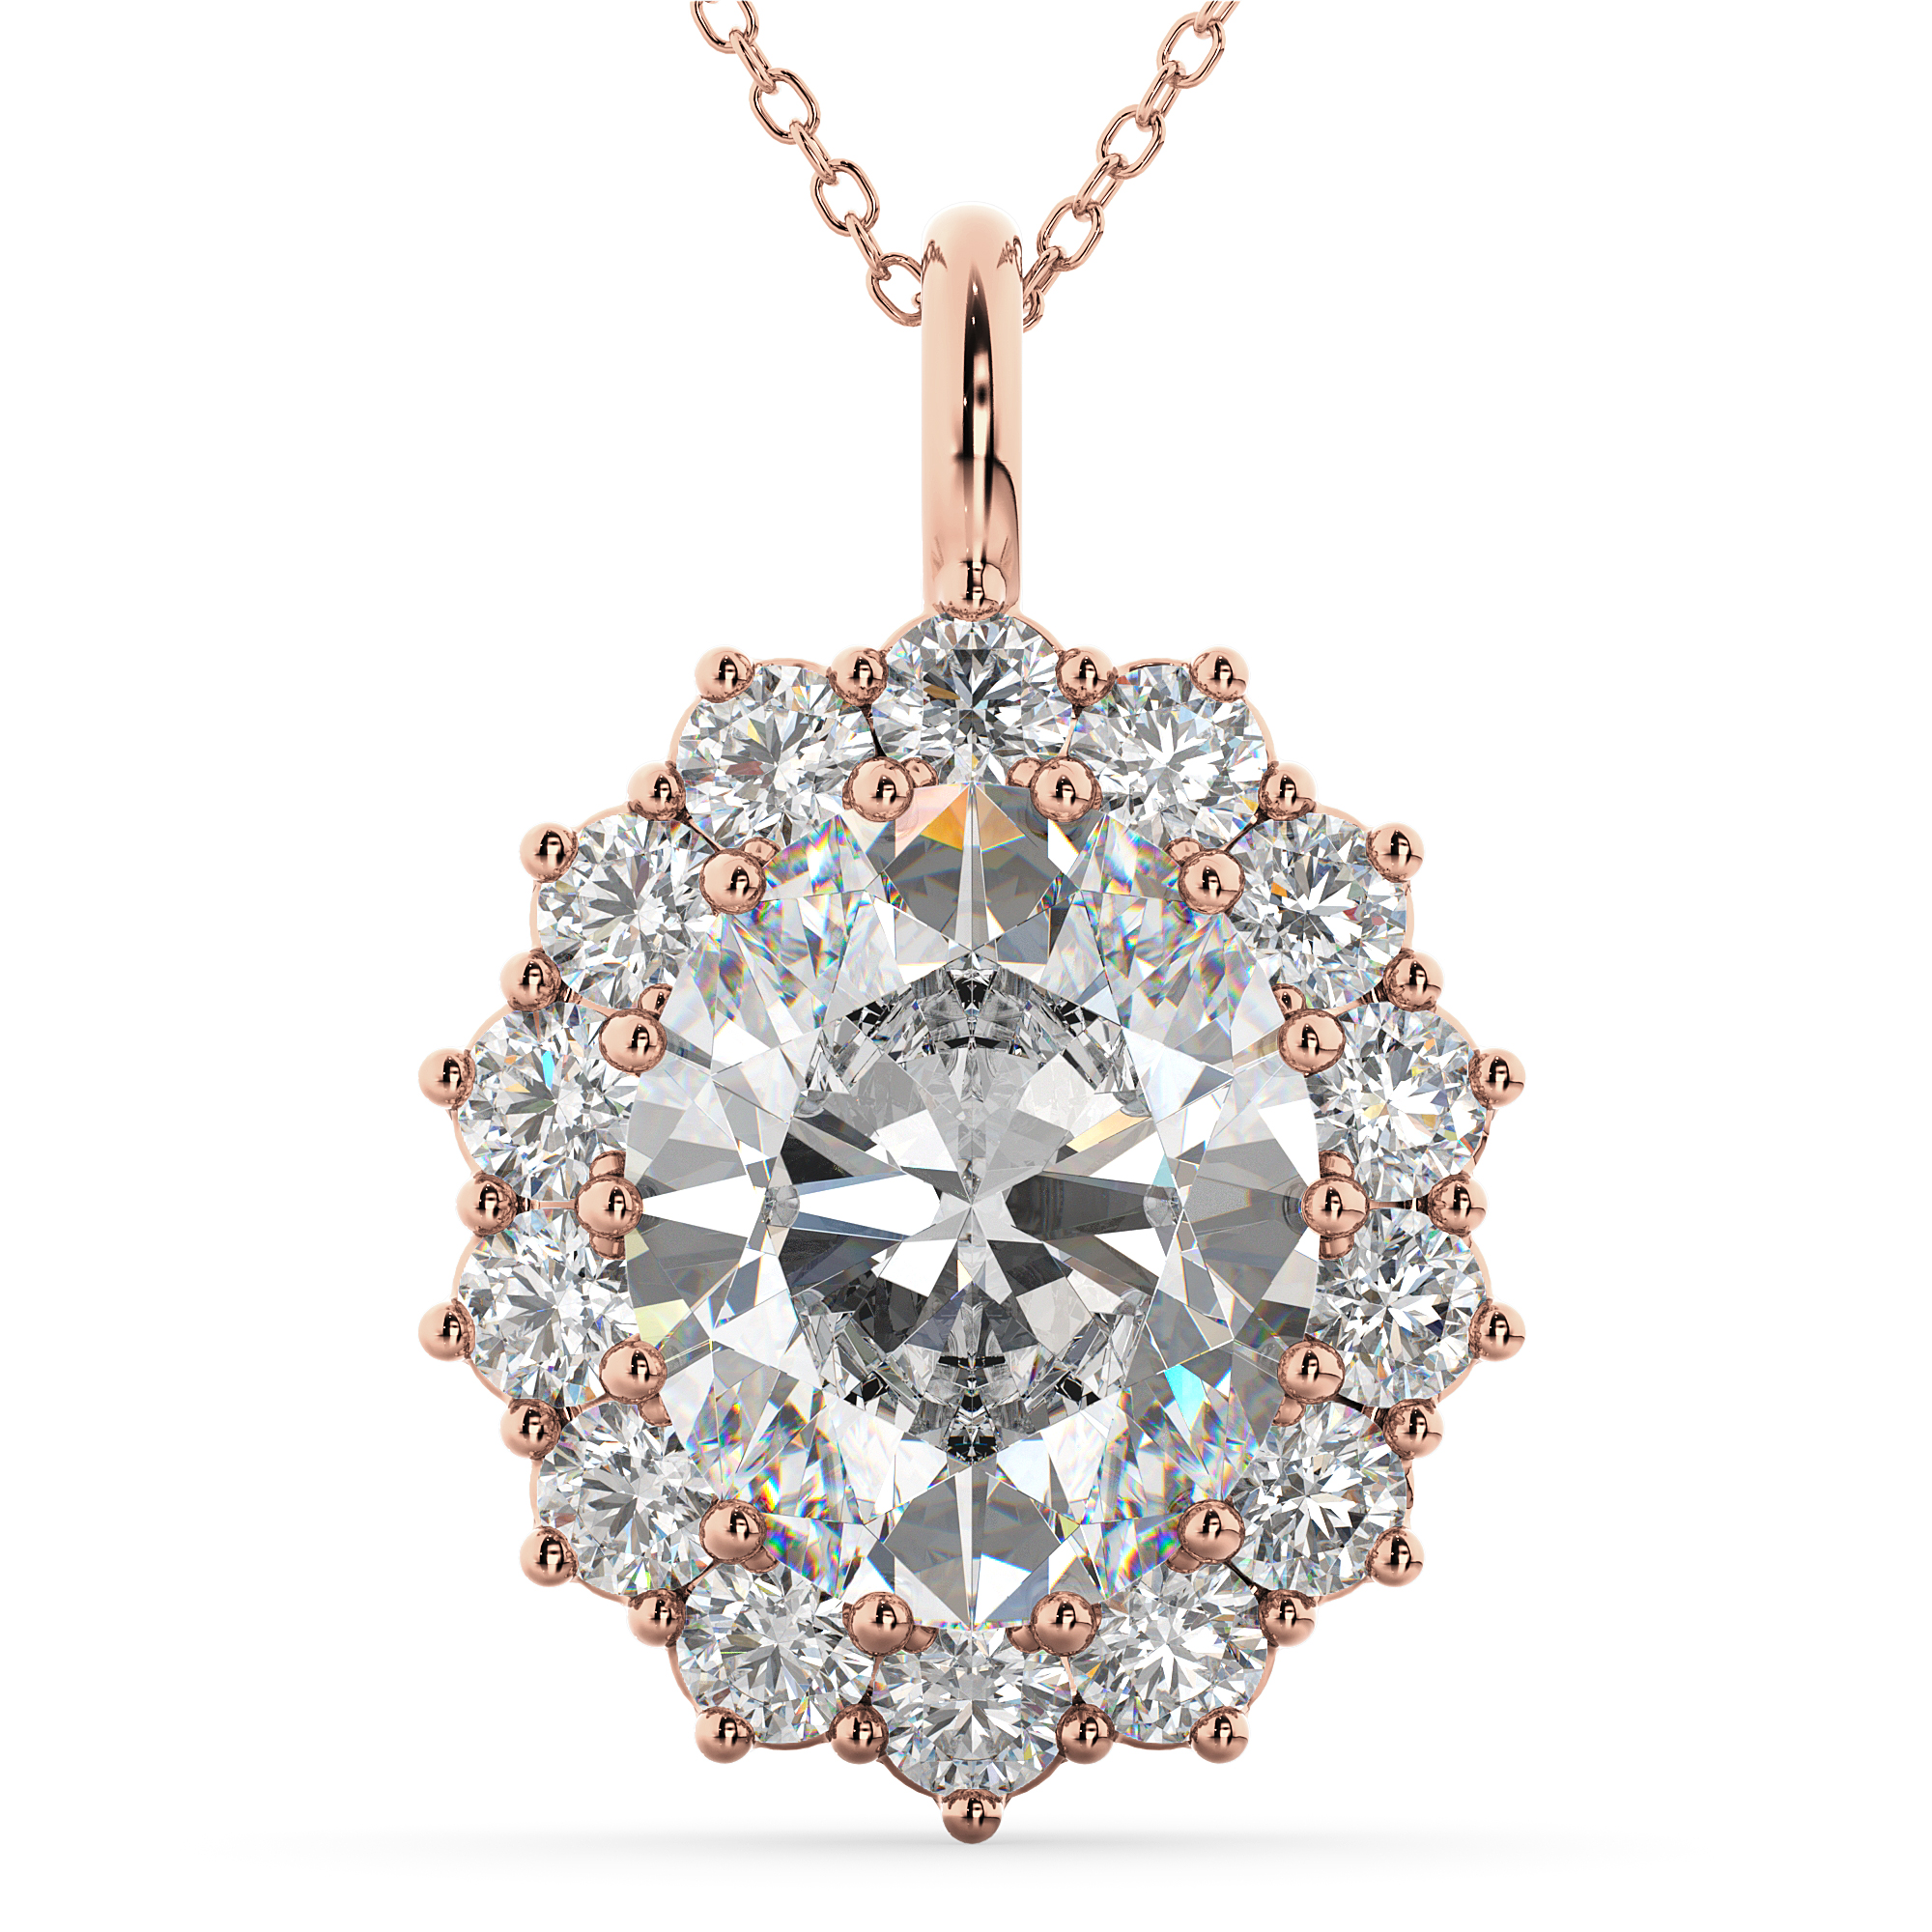 perfection bassenge articles isabelle of pursuit diamond auction image le necklace jardin atelier visionary debuts d moissanite boehmer et